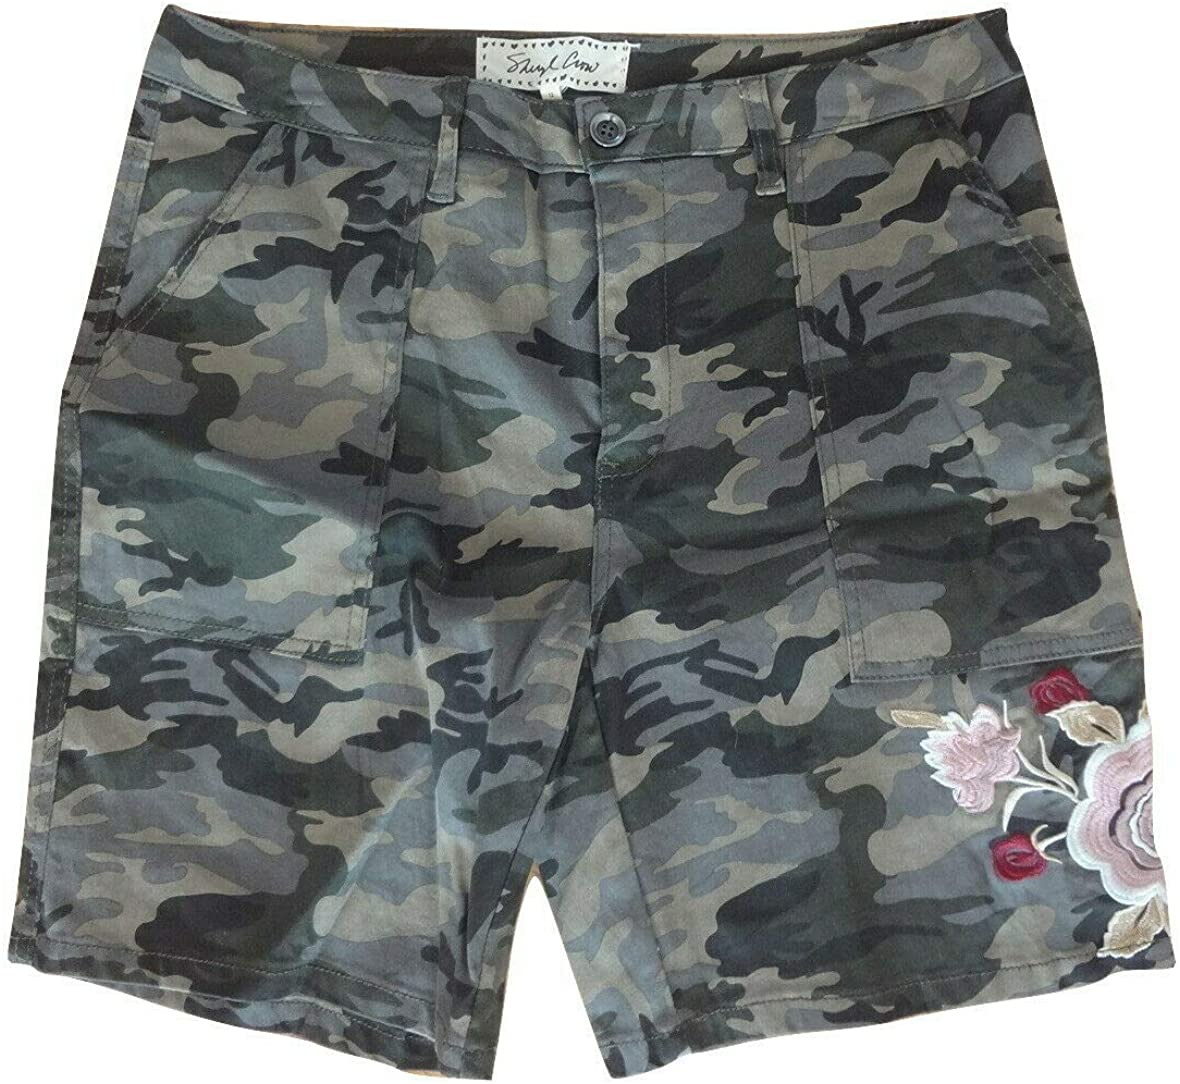 Sheryl Crow Womens' Gray Camouflage Embroidered Shorts (14)